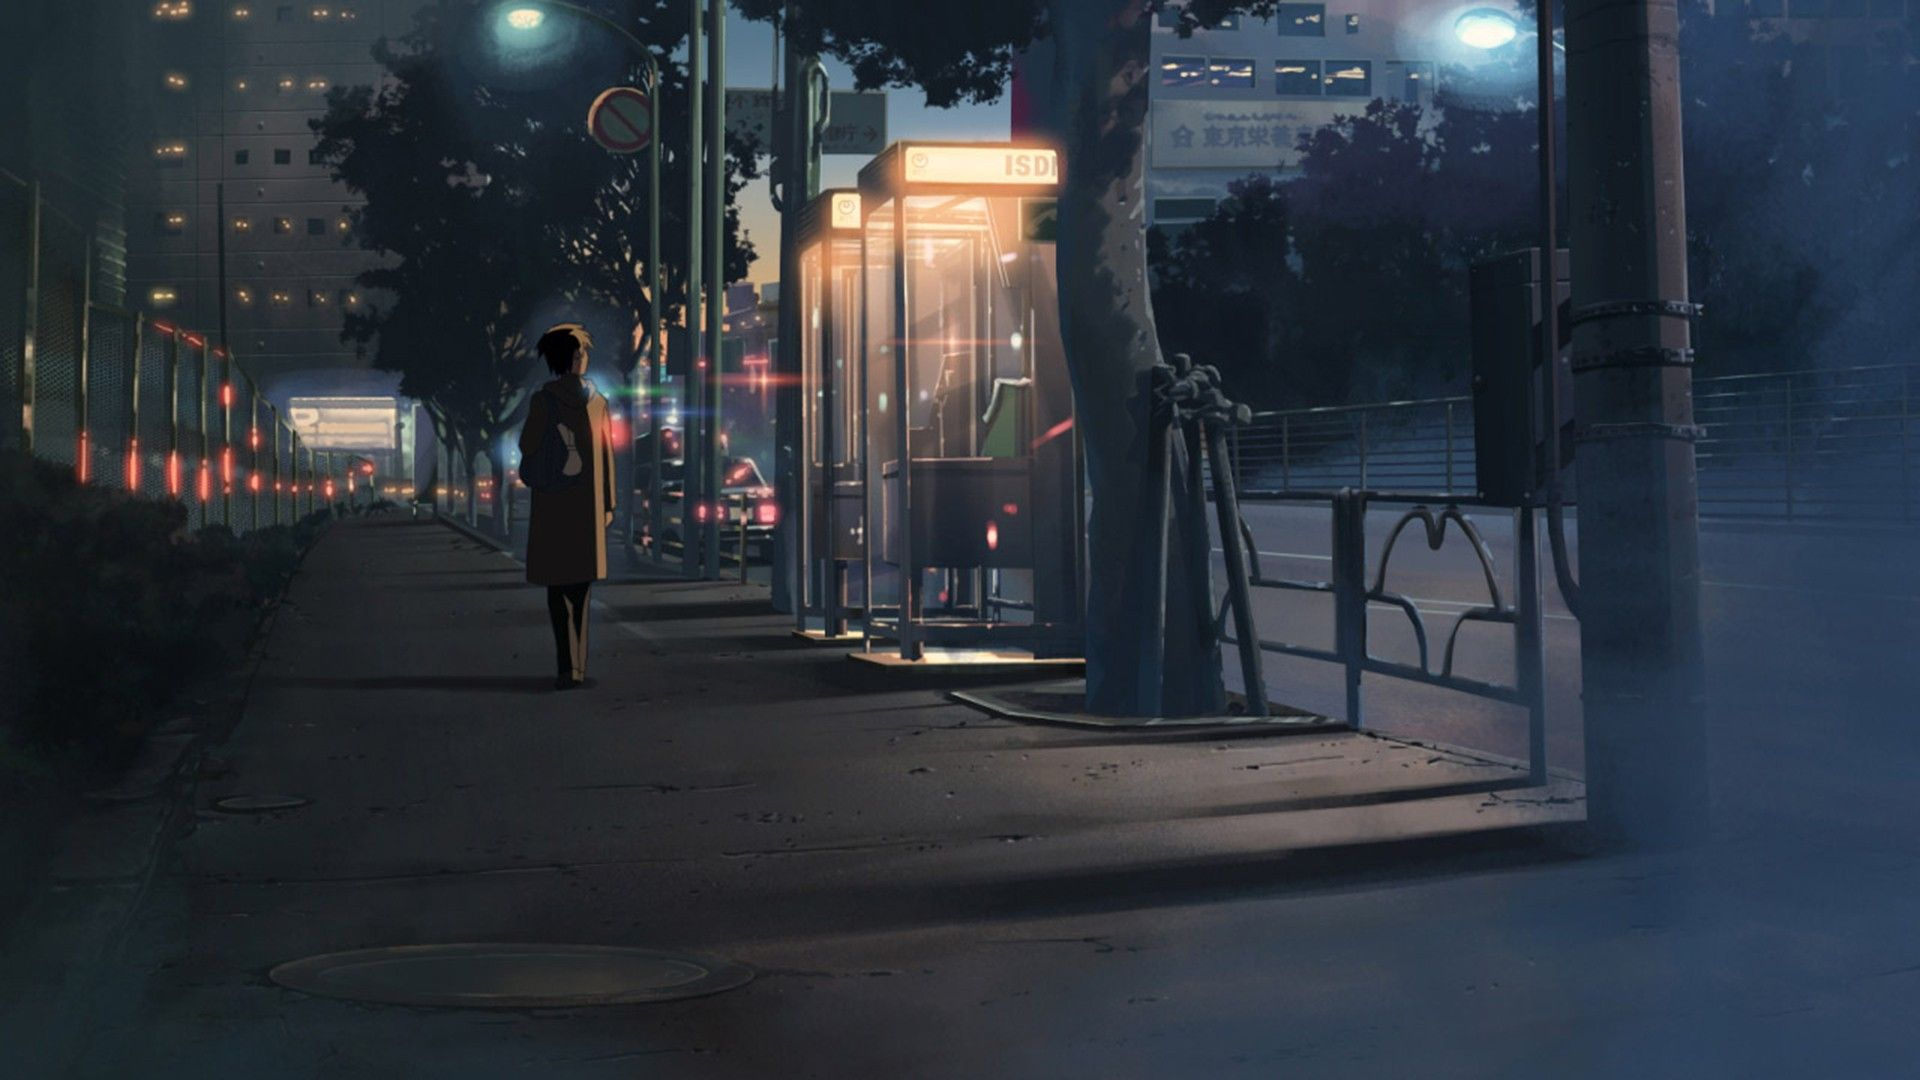 Anime 1920x1080 Night City 5 Centimeters Per Second Anime Scenery Anime City Anime Wallpaper 1920x1080